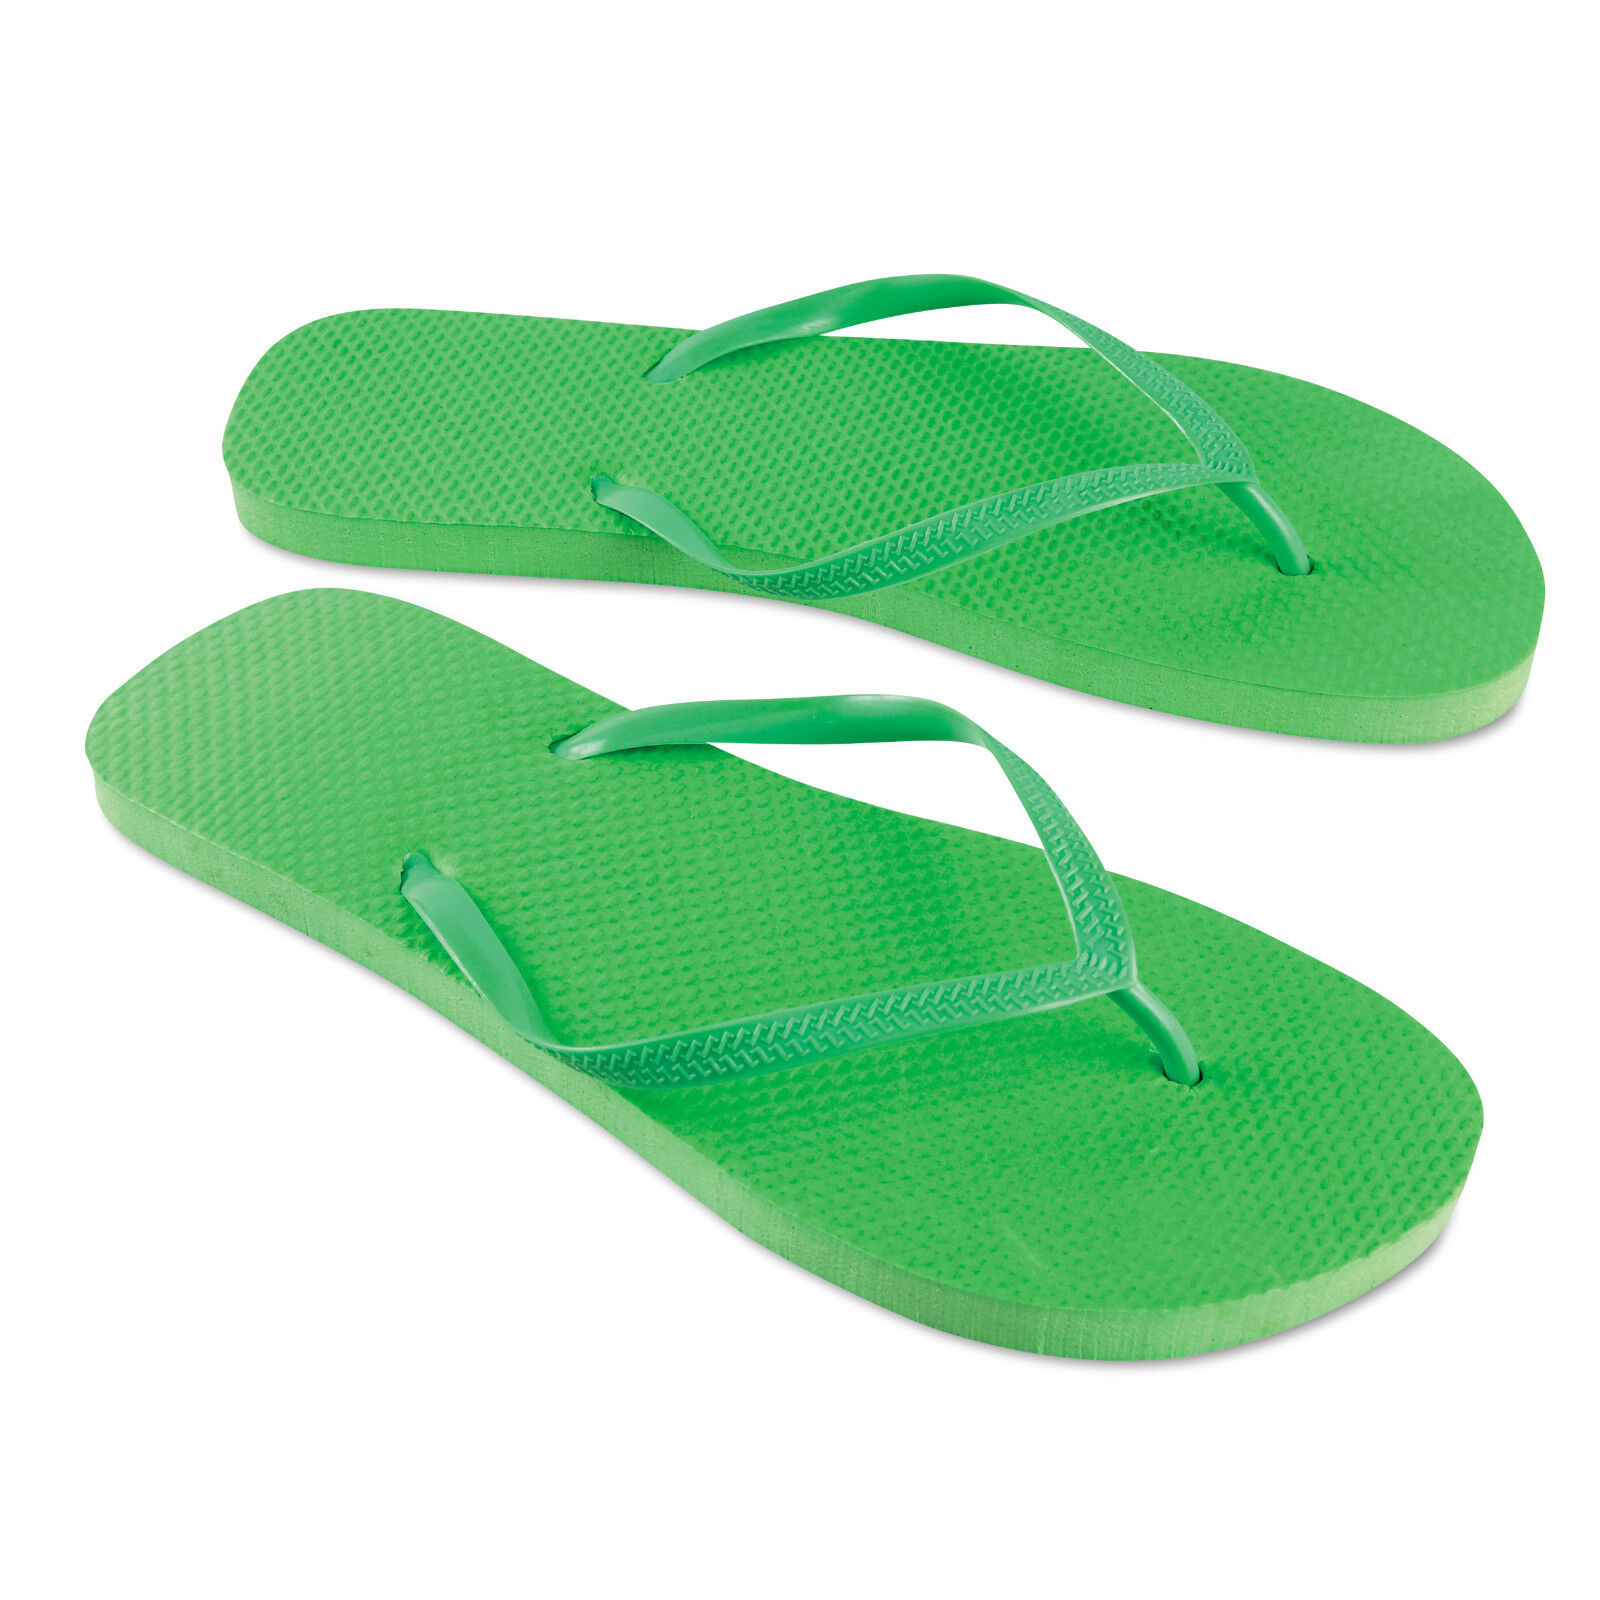 20pr Flip Flops Men/Damens Summer Beach Größe 6/9 MEDIUM LARGE Sandales